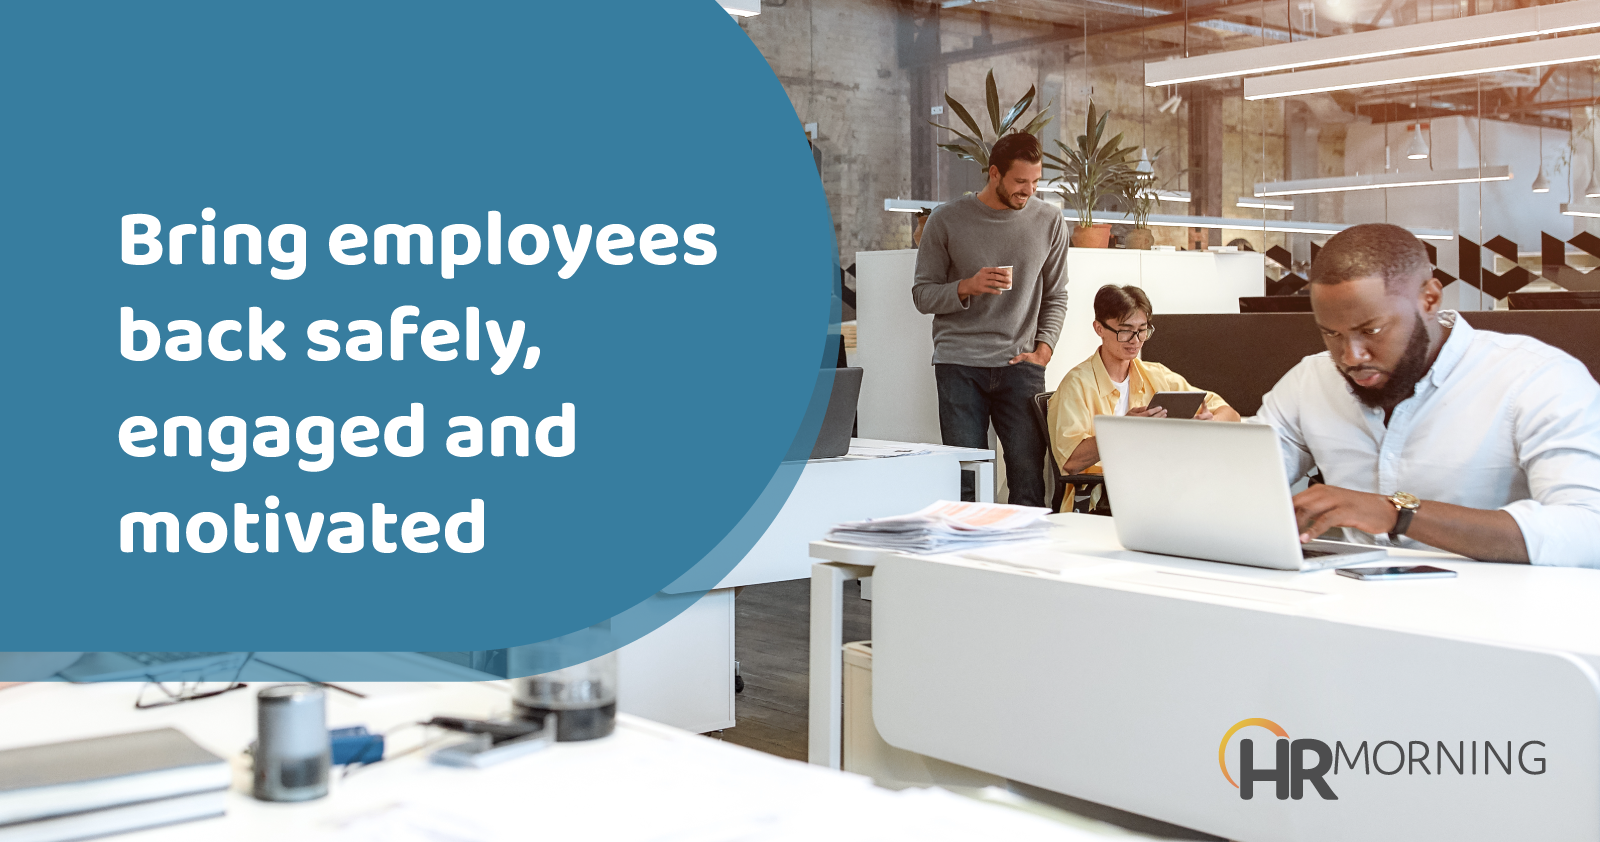 bring employees back safely engaged and motivated